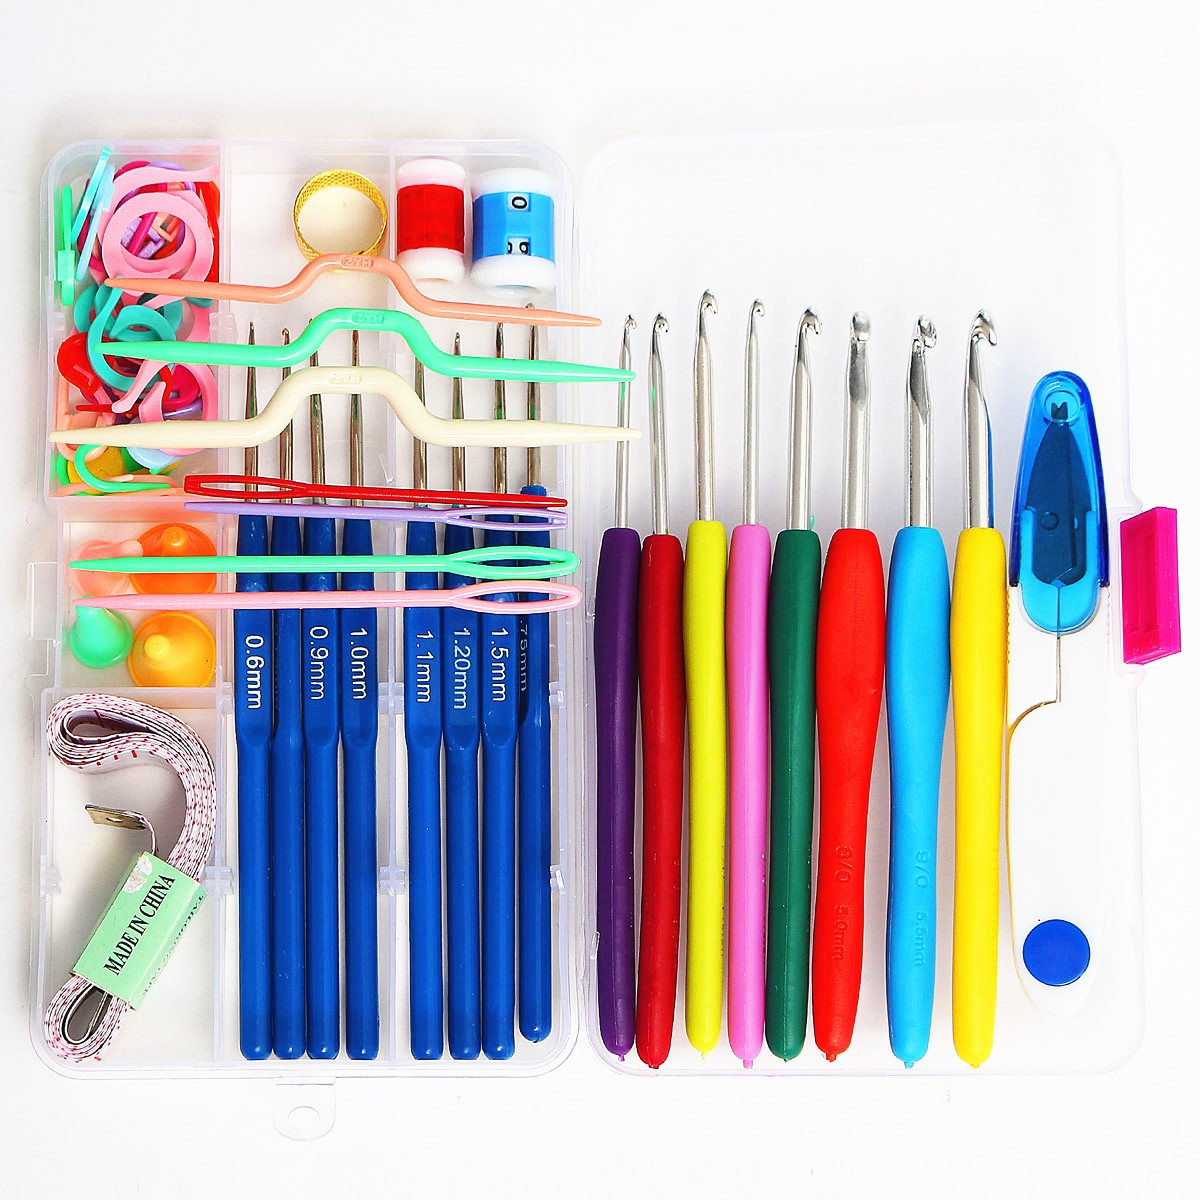 16 Sizes Colorful Stainless Steel Ergonomic Crochet Hooks Kit Handmade Needles Stitches Sewing Knitting Weave Craft Yarn Hand Tool Case Set Soft Grip Handles Sewing Accessories